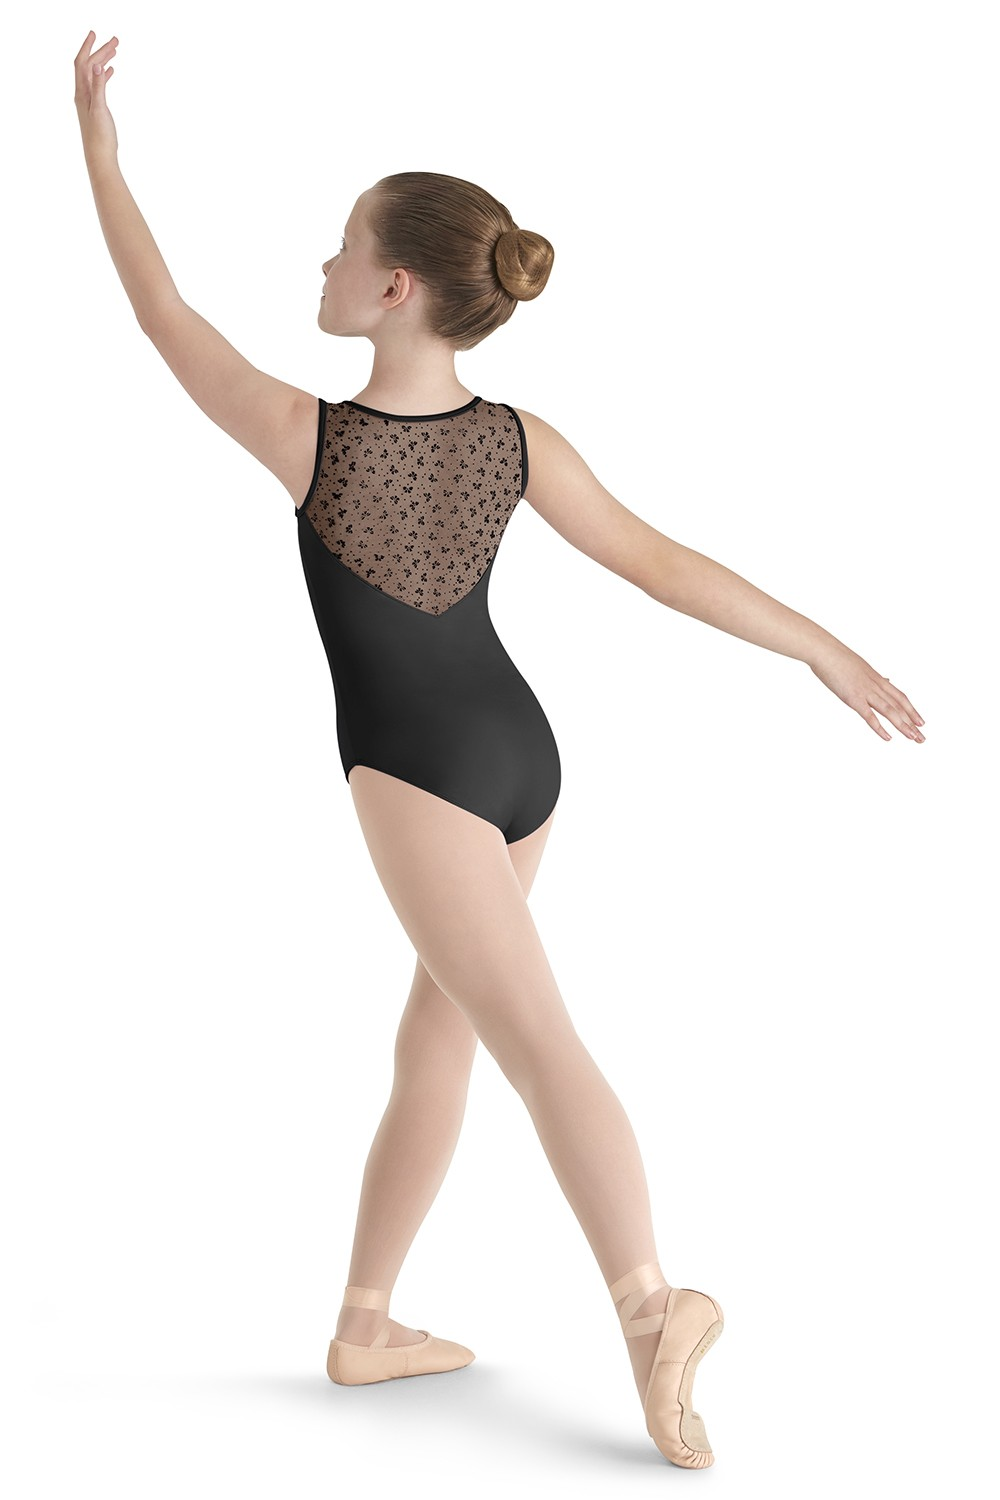 Justaucorps Sans Manches, Maille Floquée Children's Dance Leotards